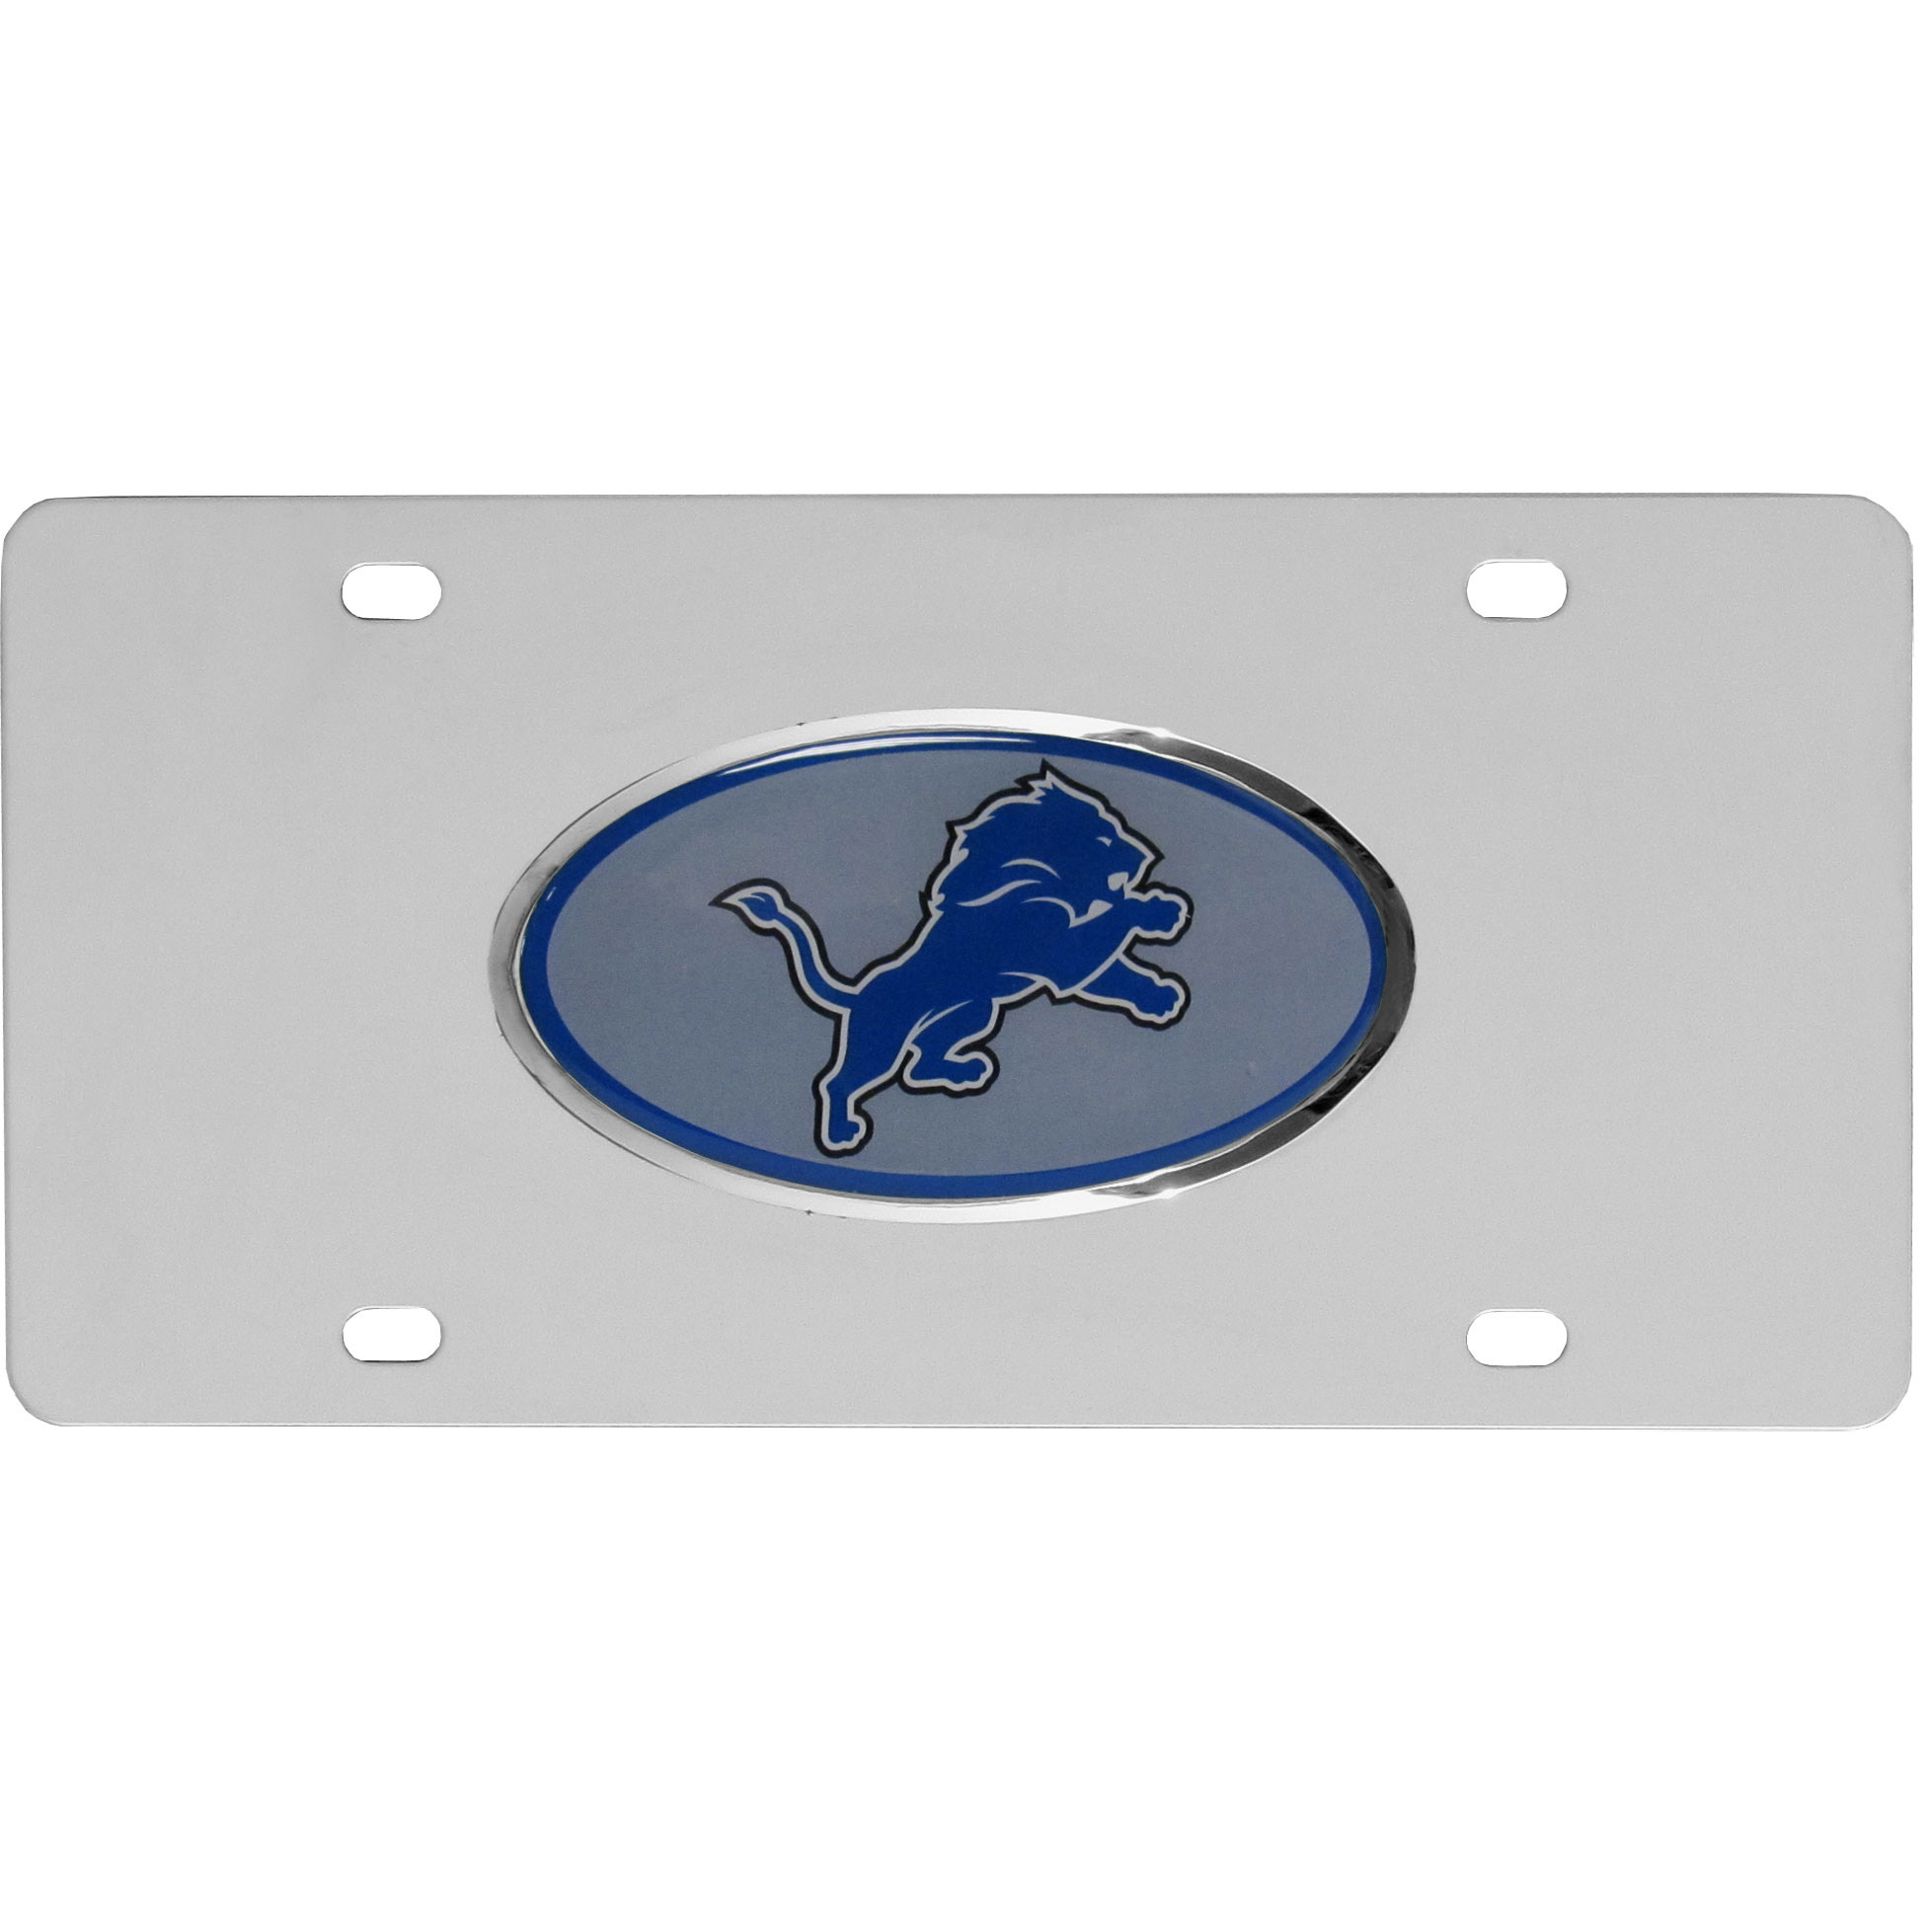 Detroit Lions Steel License Plate with Domed Emblem - Show off your team pride on your vehicle or mounted on your wall with this Detroit Lions stainless steel license plate with raised emblem with chrome border.